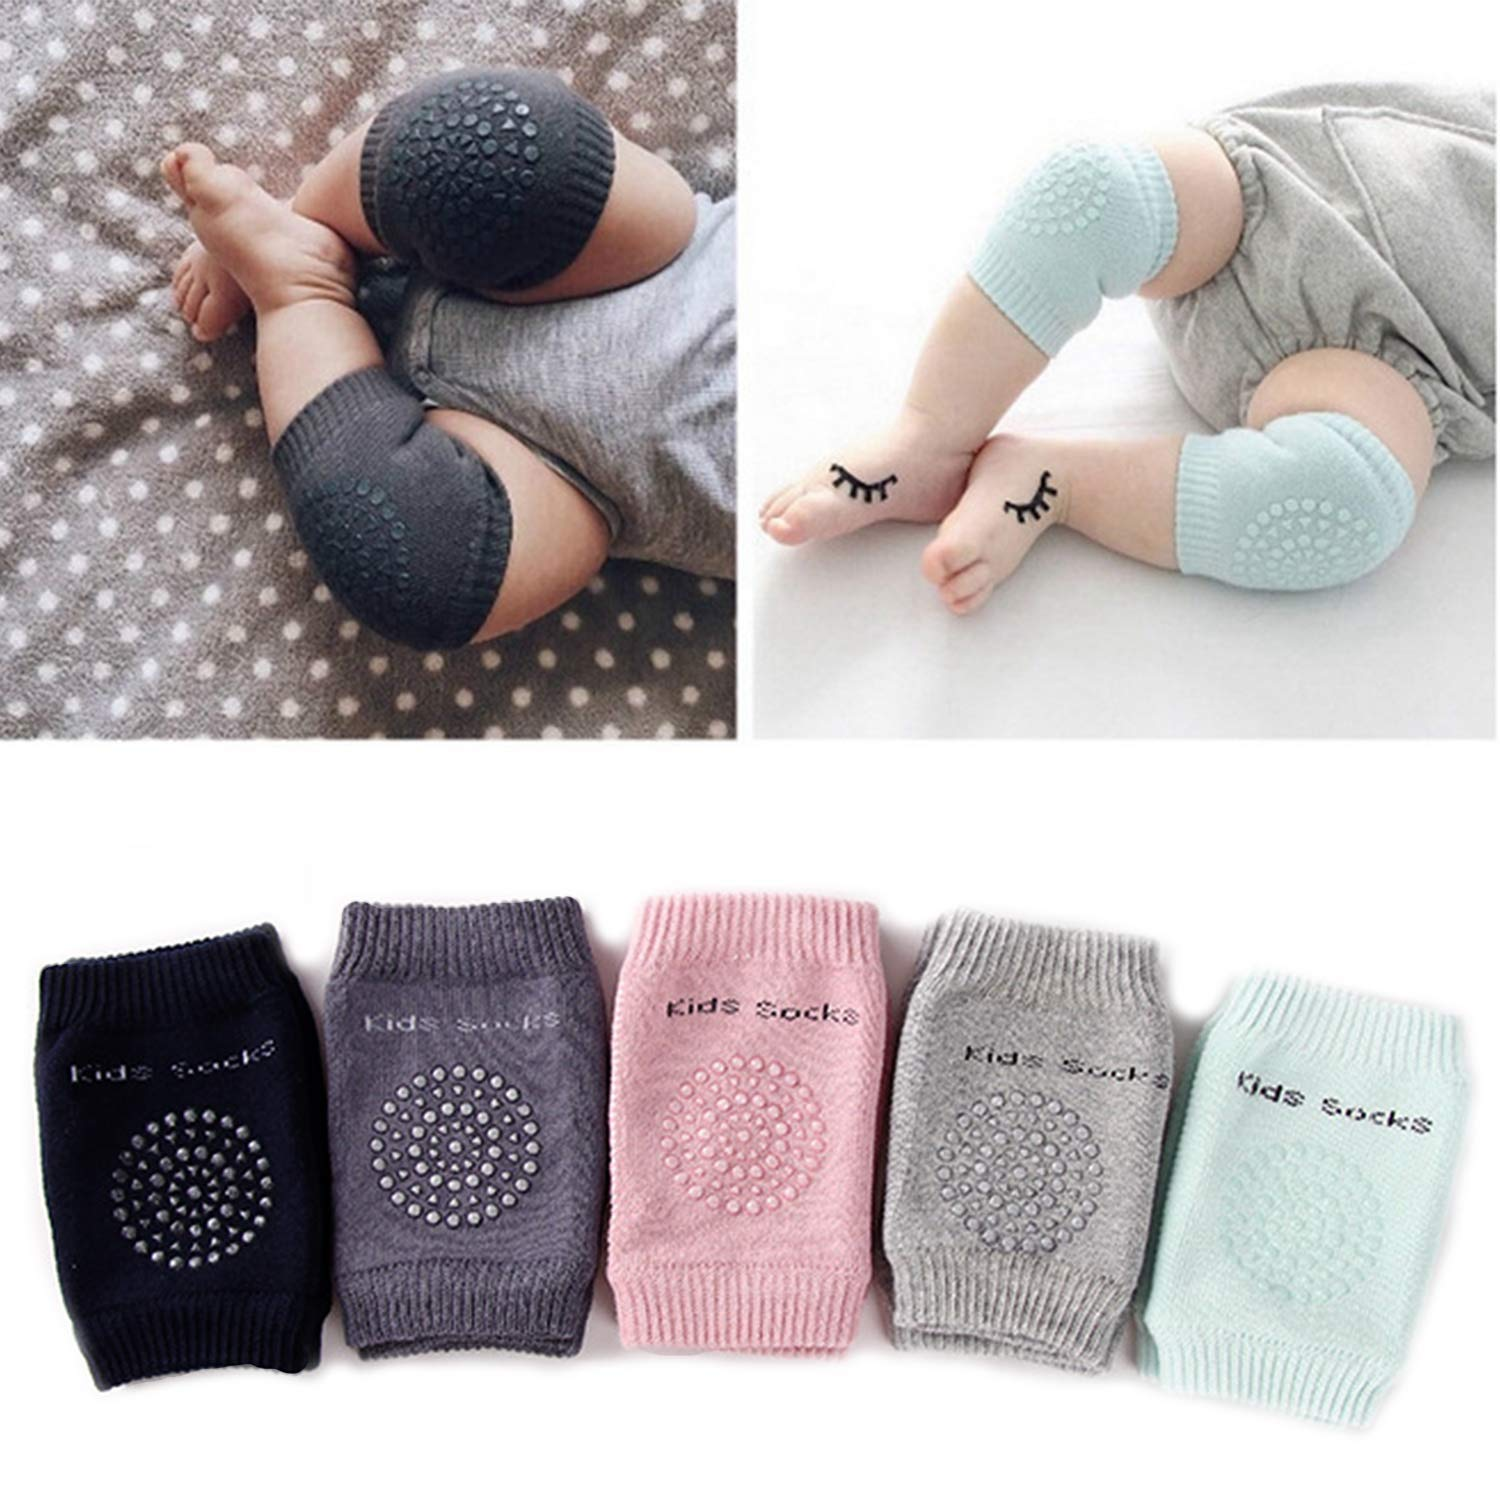 5 Pairs Baby Crawling Anti-Slip Knee Pads, Unisex Baby Toddlers Kneepads (Multiple colors)